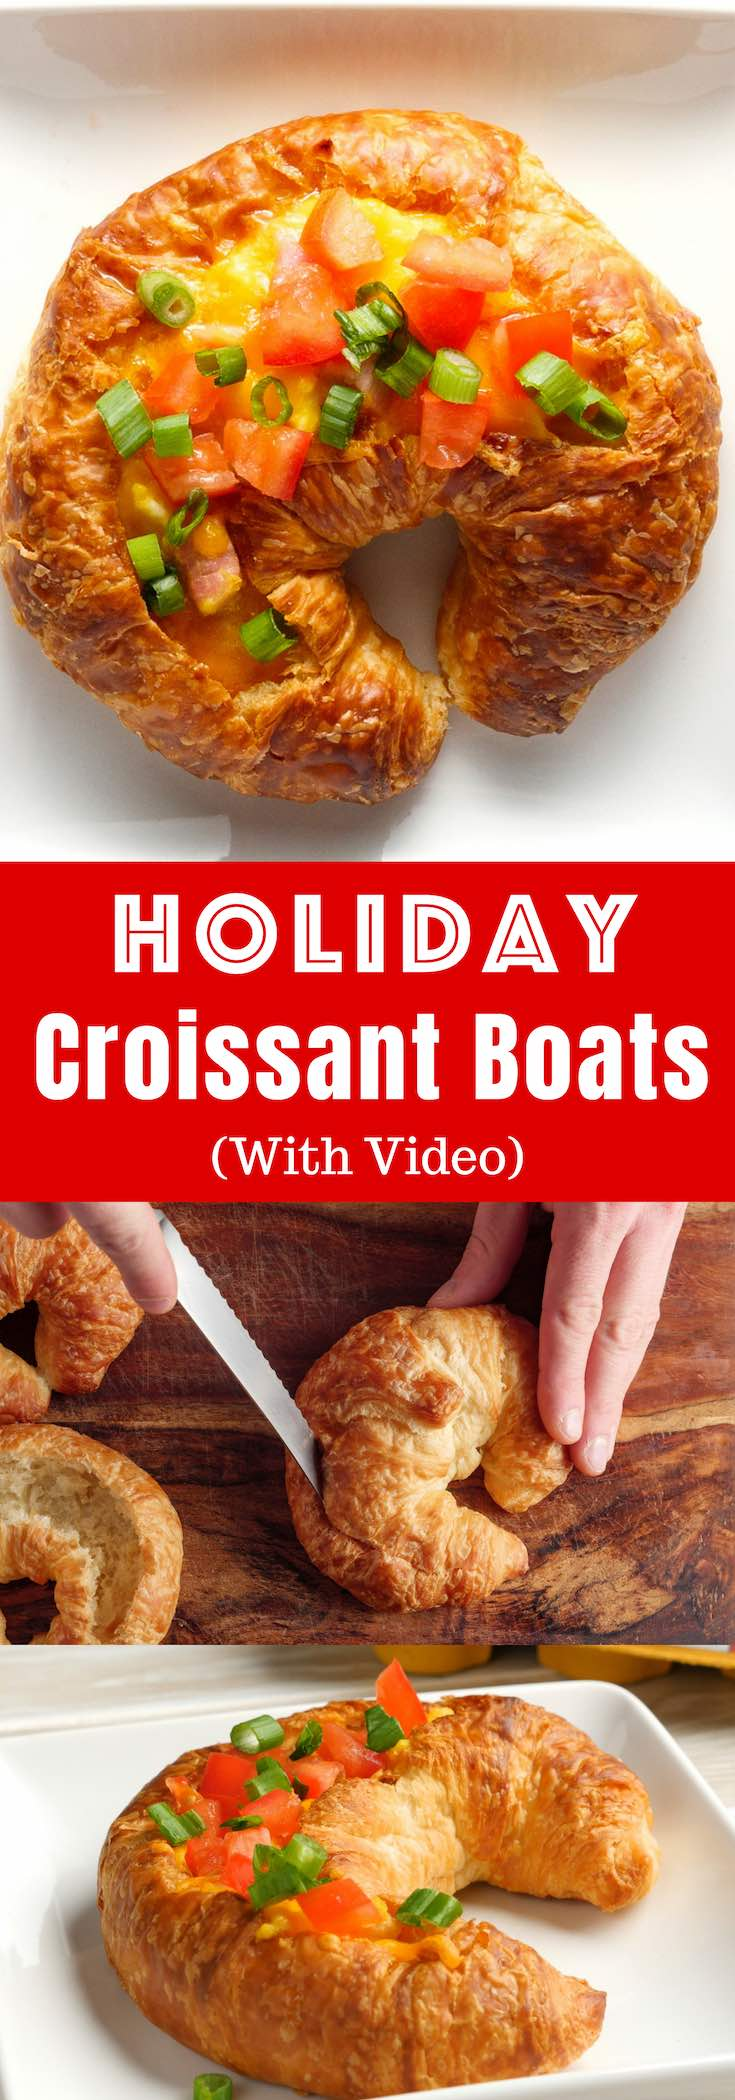 Holiday Croissant Boats are a fun and easy breakfast or brunch recipe that everyone will love, featuring fluffy omelet with ham and cheese baked inside of a flaky croissant. So delicious! Video recipe. @Happyeggcousa #HappyHenHappyEgg #FreeestFreeRange #AD